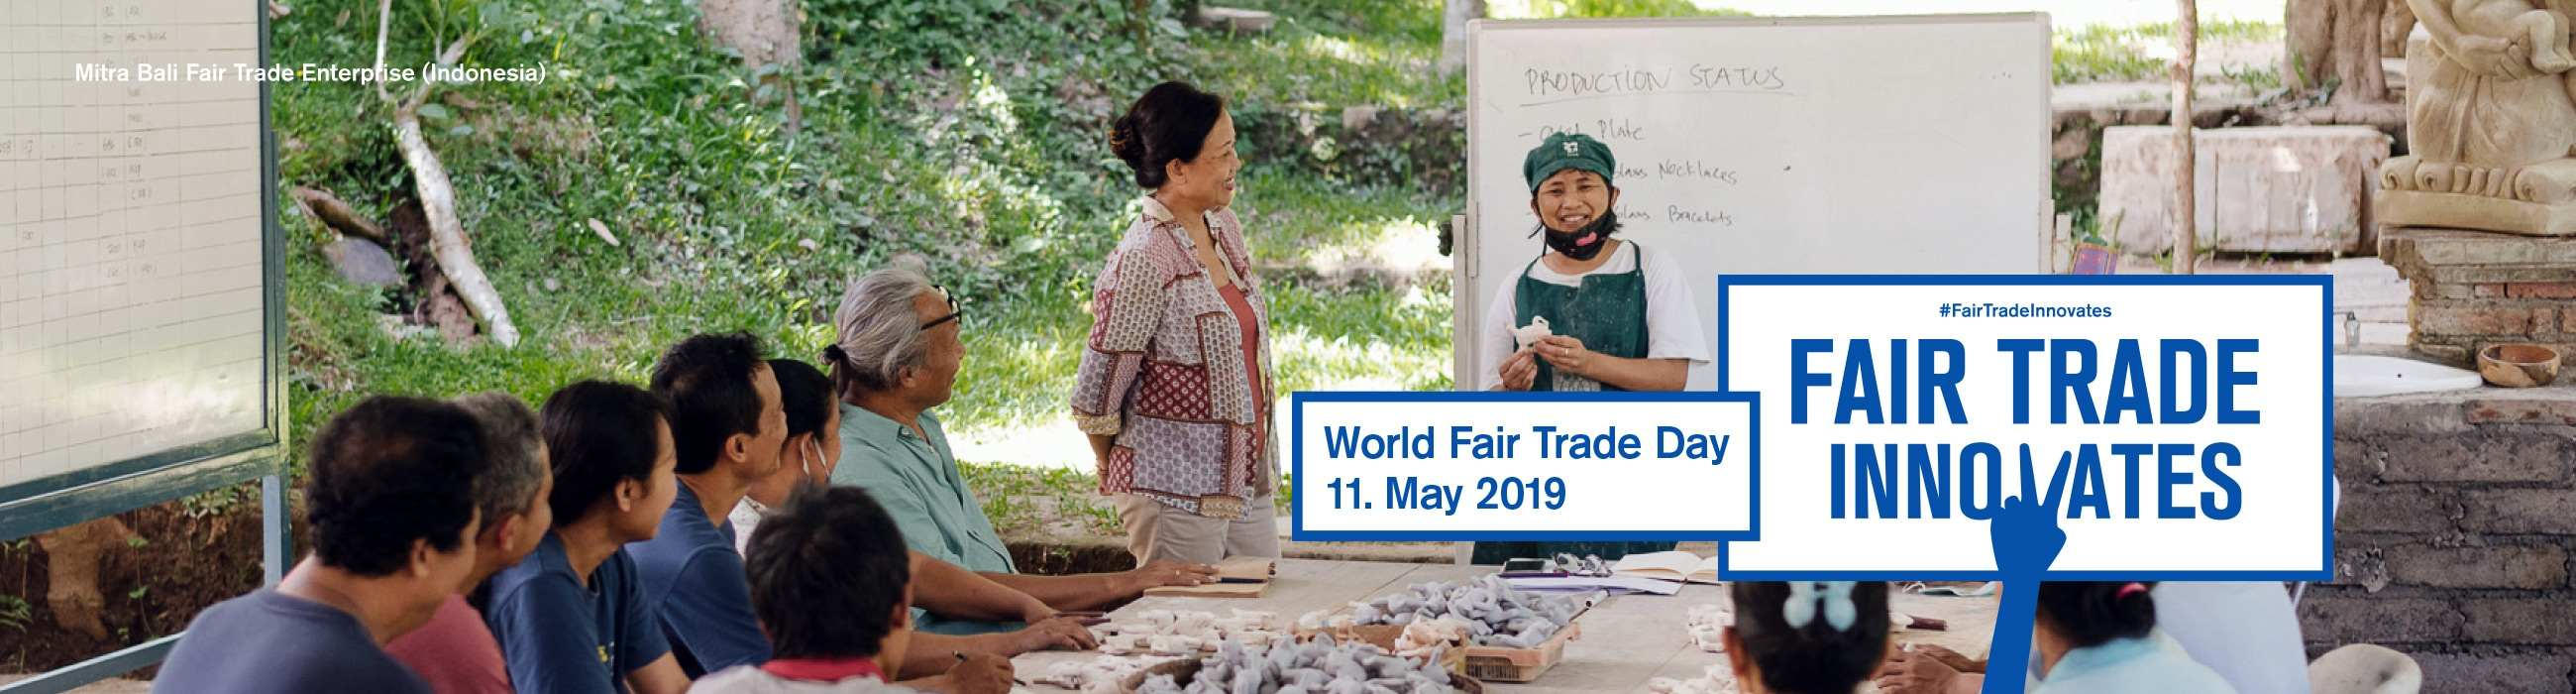 Mitra Bali Fair Trade Enterprise - World Fair Trade Day 2019 - Fair Trade Innovates